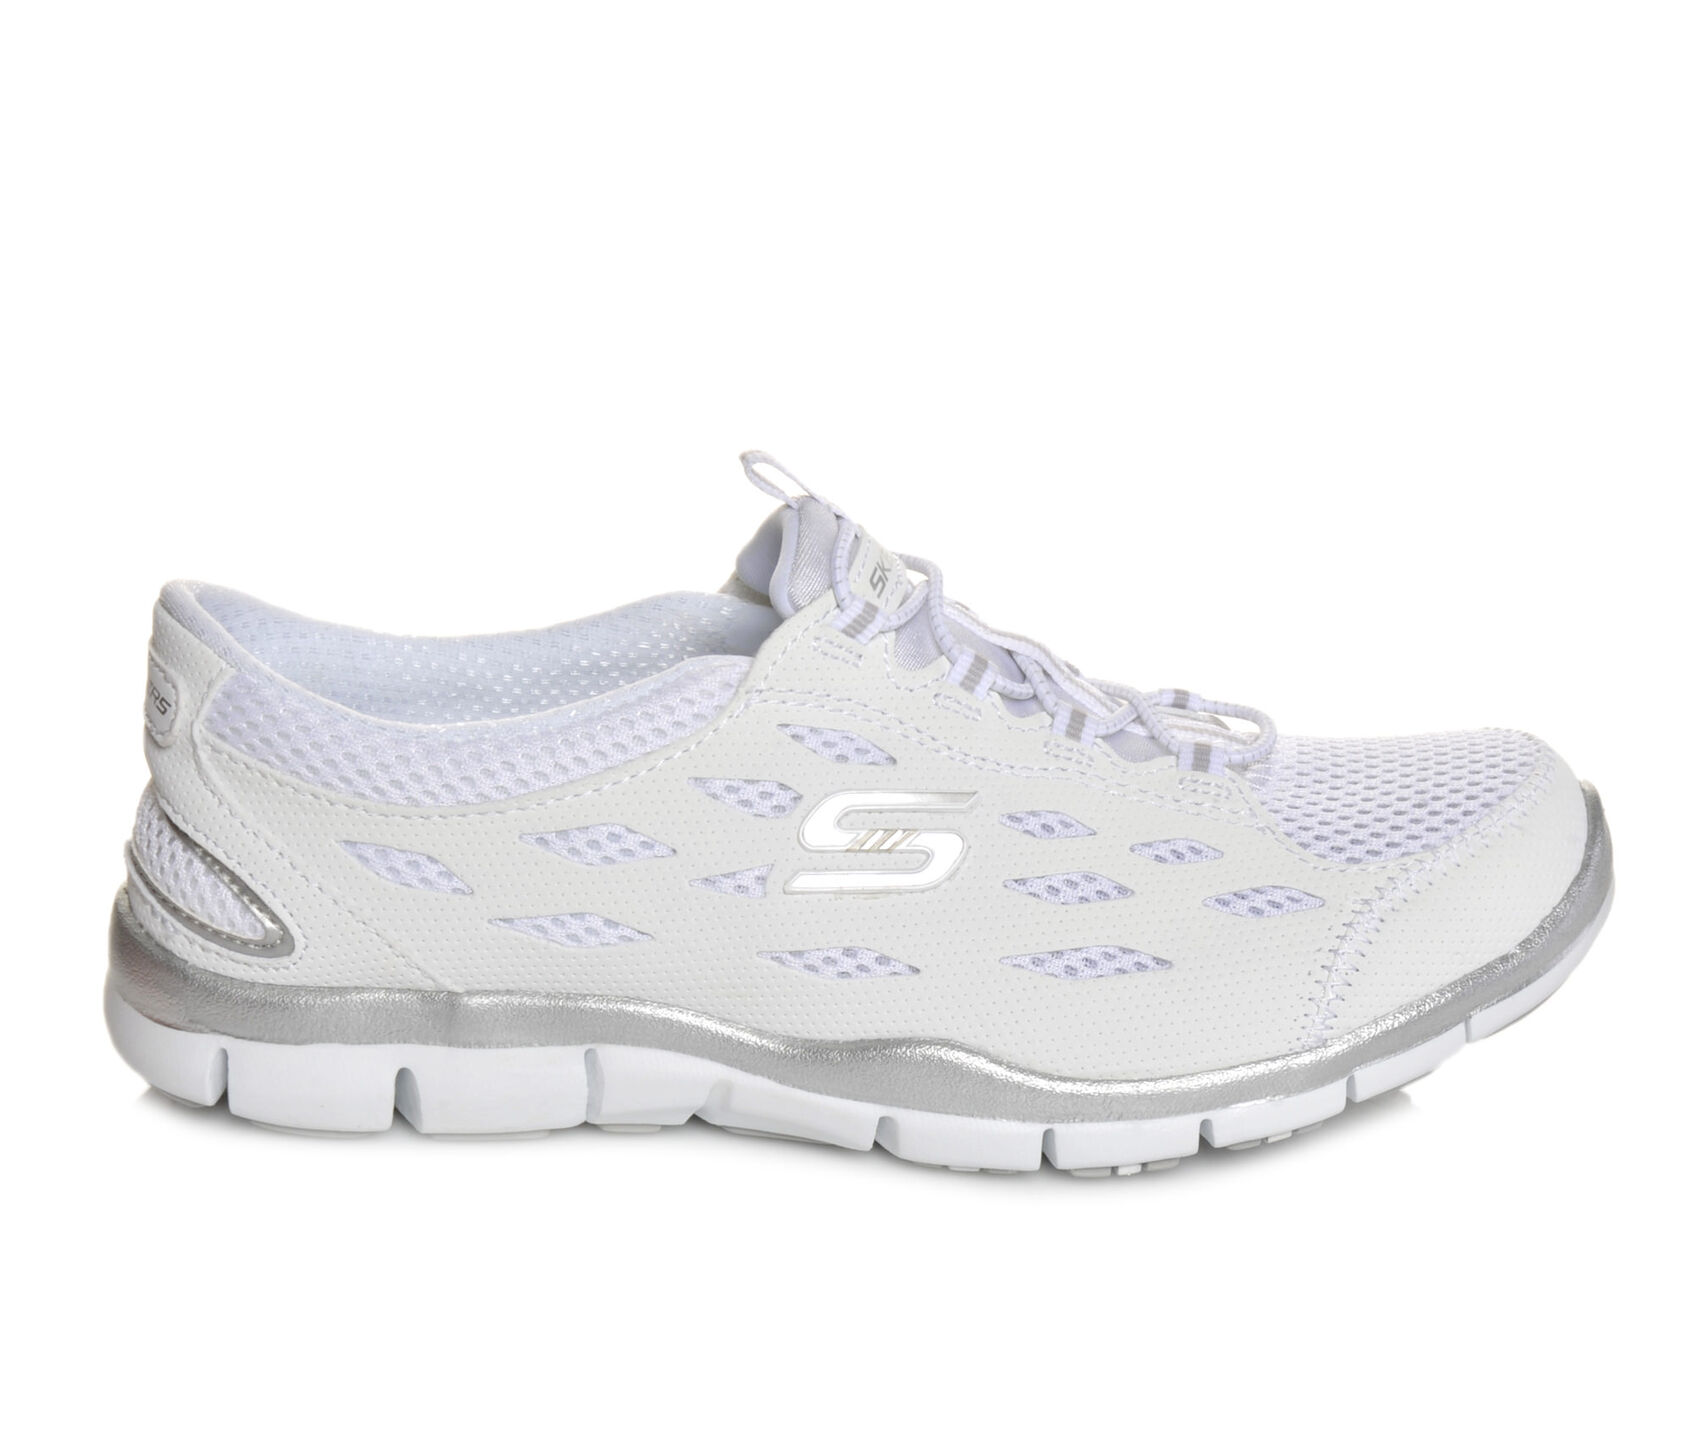 gibson eye reviews comfortable dr day shoes all sneakers at work and martens lace standing comforter for good up best